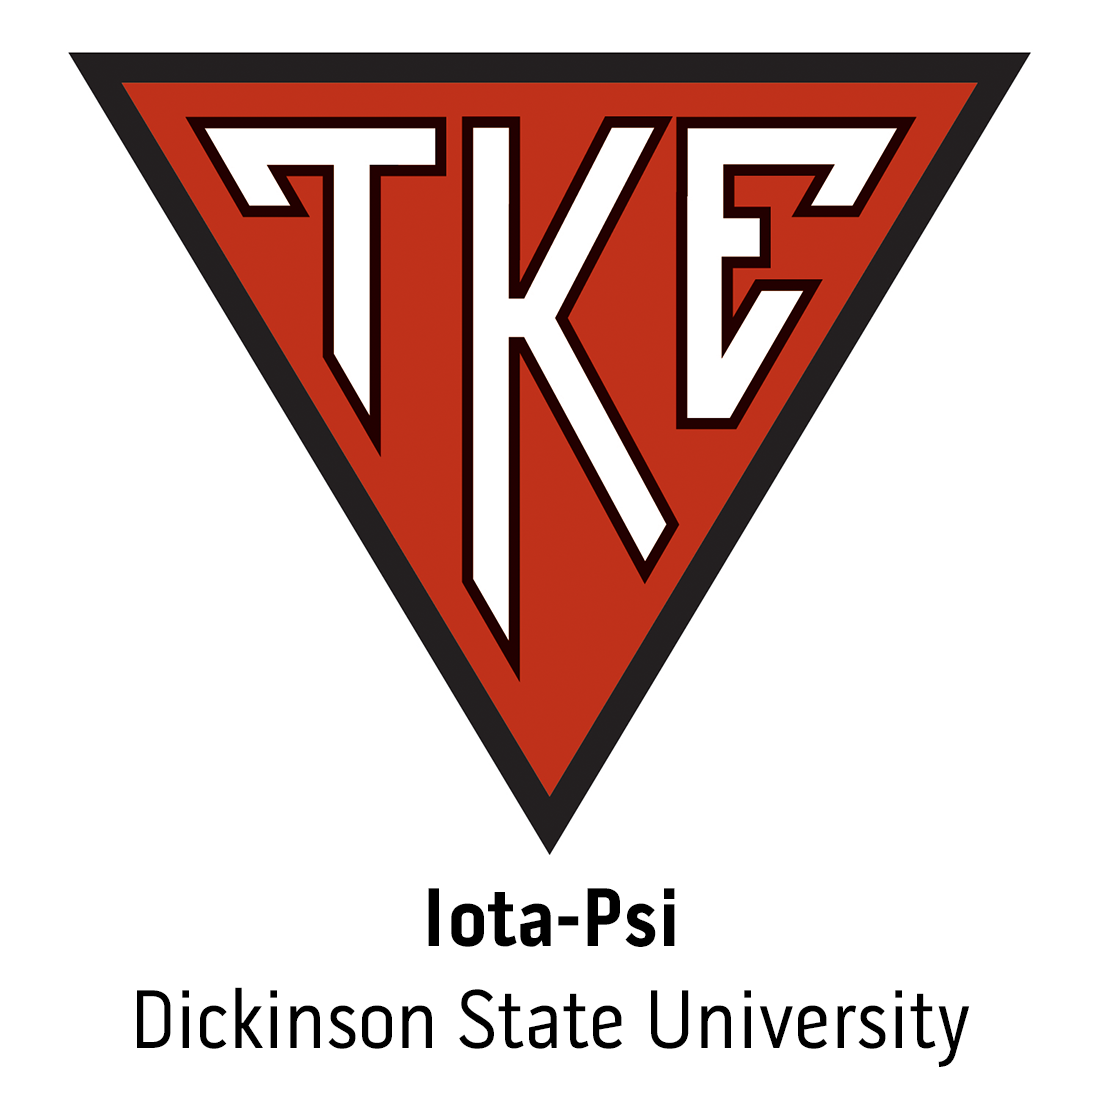 Iota-Psi Colony at Dickinson State University